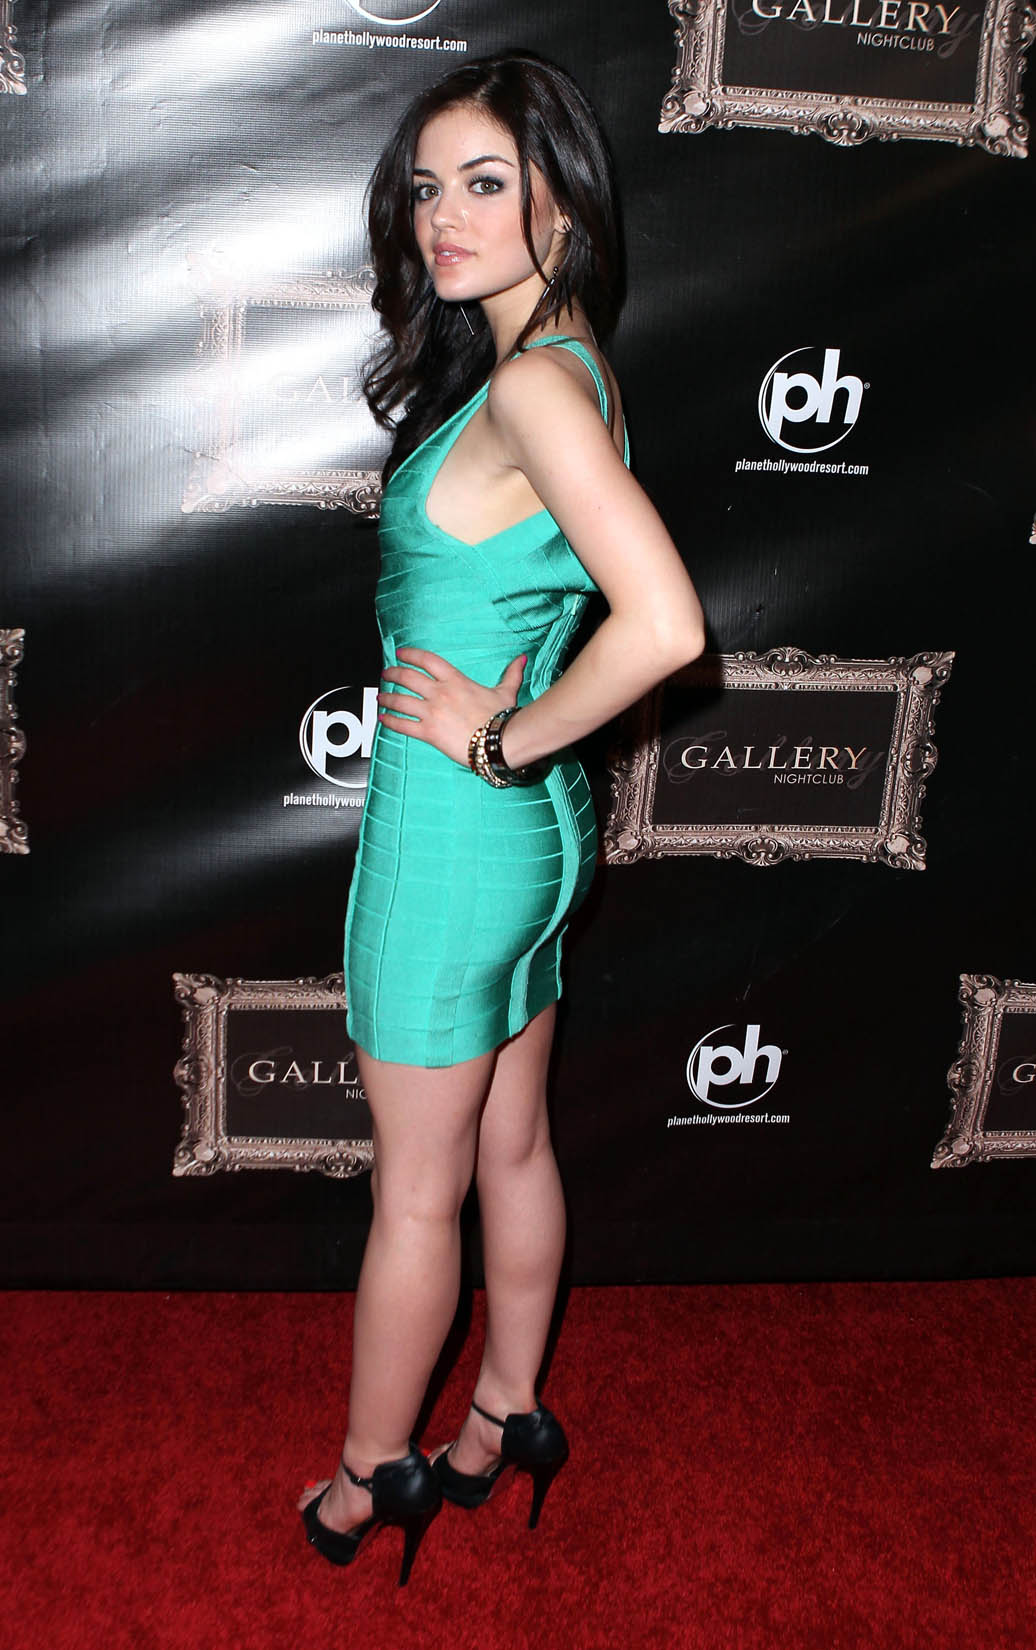 Anna Jagodzinska Nude Photos and Videos,Joanna jojo levesque on stage at her show in dallas Porn pic GIFs Desiree Buccacio,Elizabeth olsen filmmakers dinner in cap dantibes france